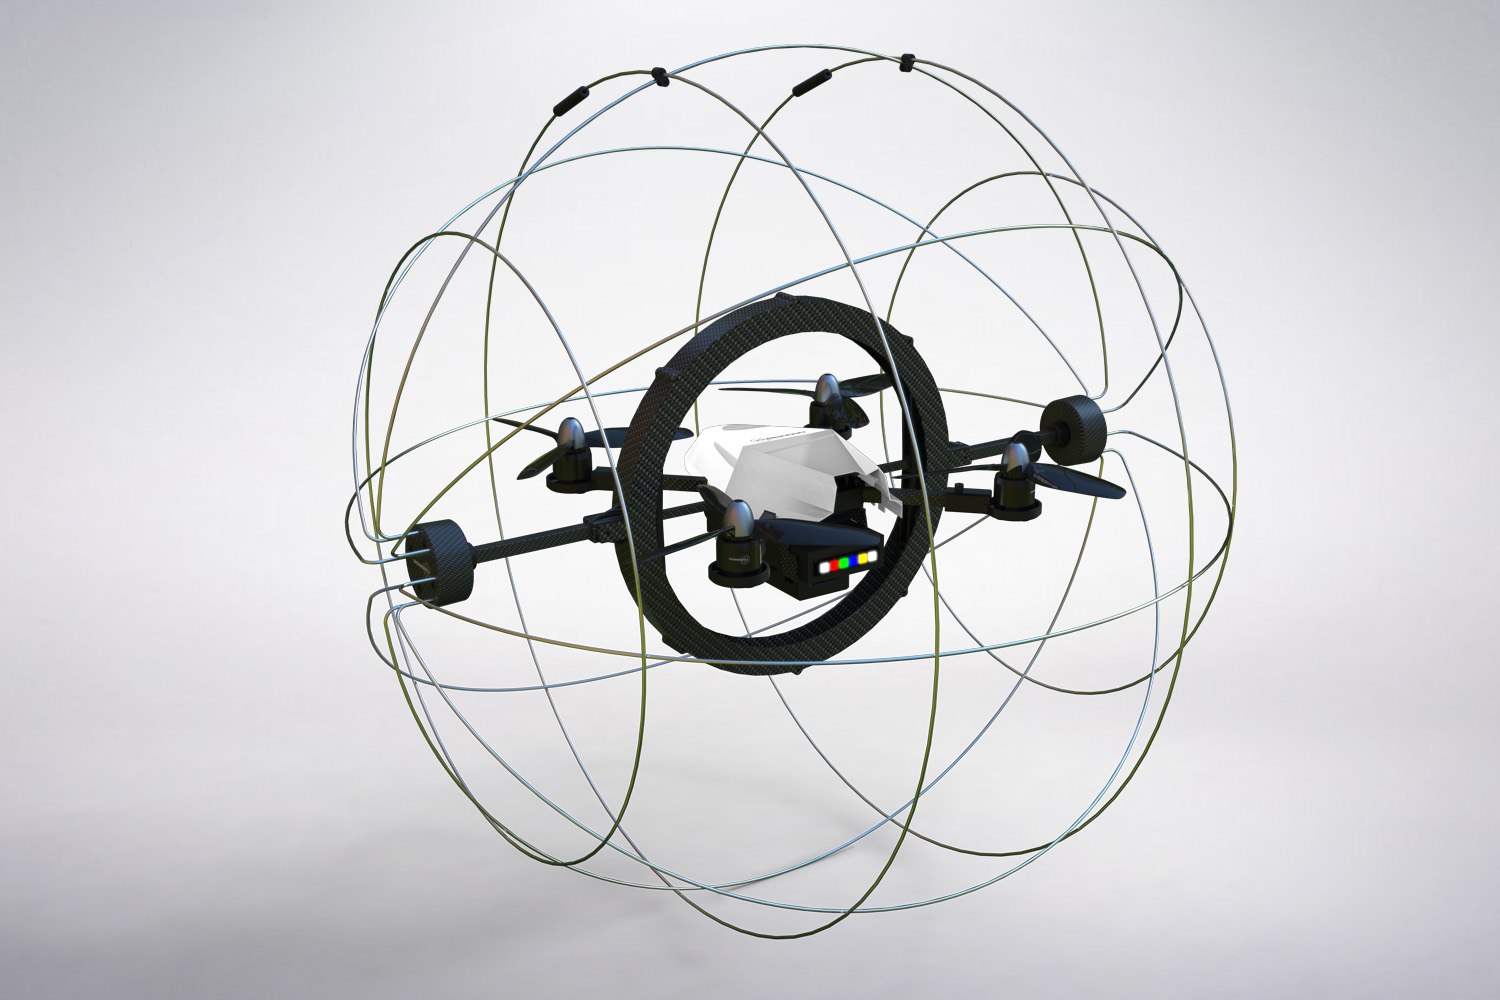 consumer uav with Flying Hamster Ball Droneball Soars 184332245 on 82001 also Drone Innovation Trends Watch 2017 further Flying Hamster Ball Droneball Soars 184332245 additionally Global  mercial Drones Market besides Top 20 Drone Manufacturers Rankings By Droneii.